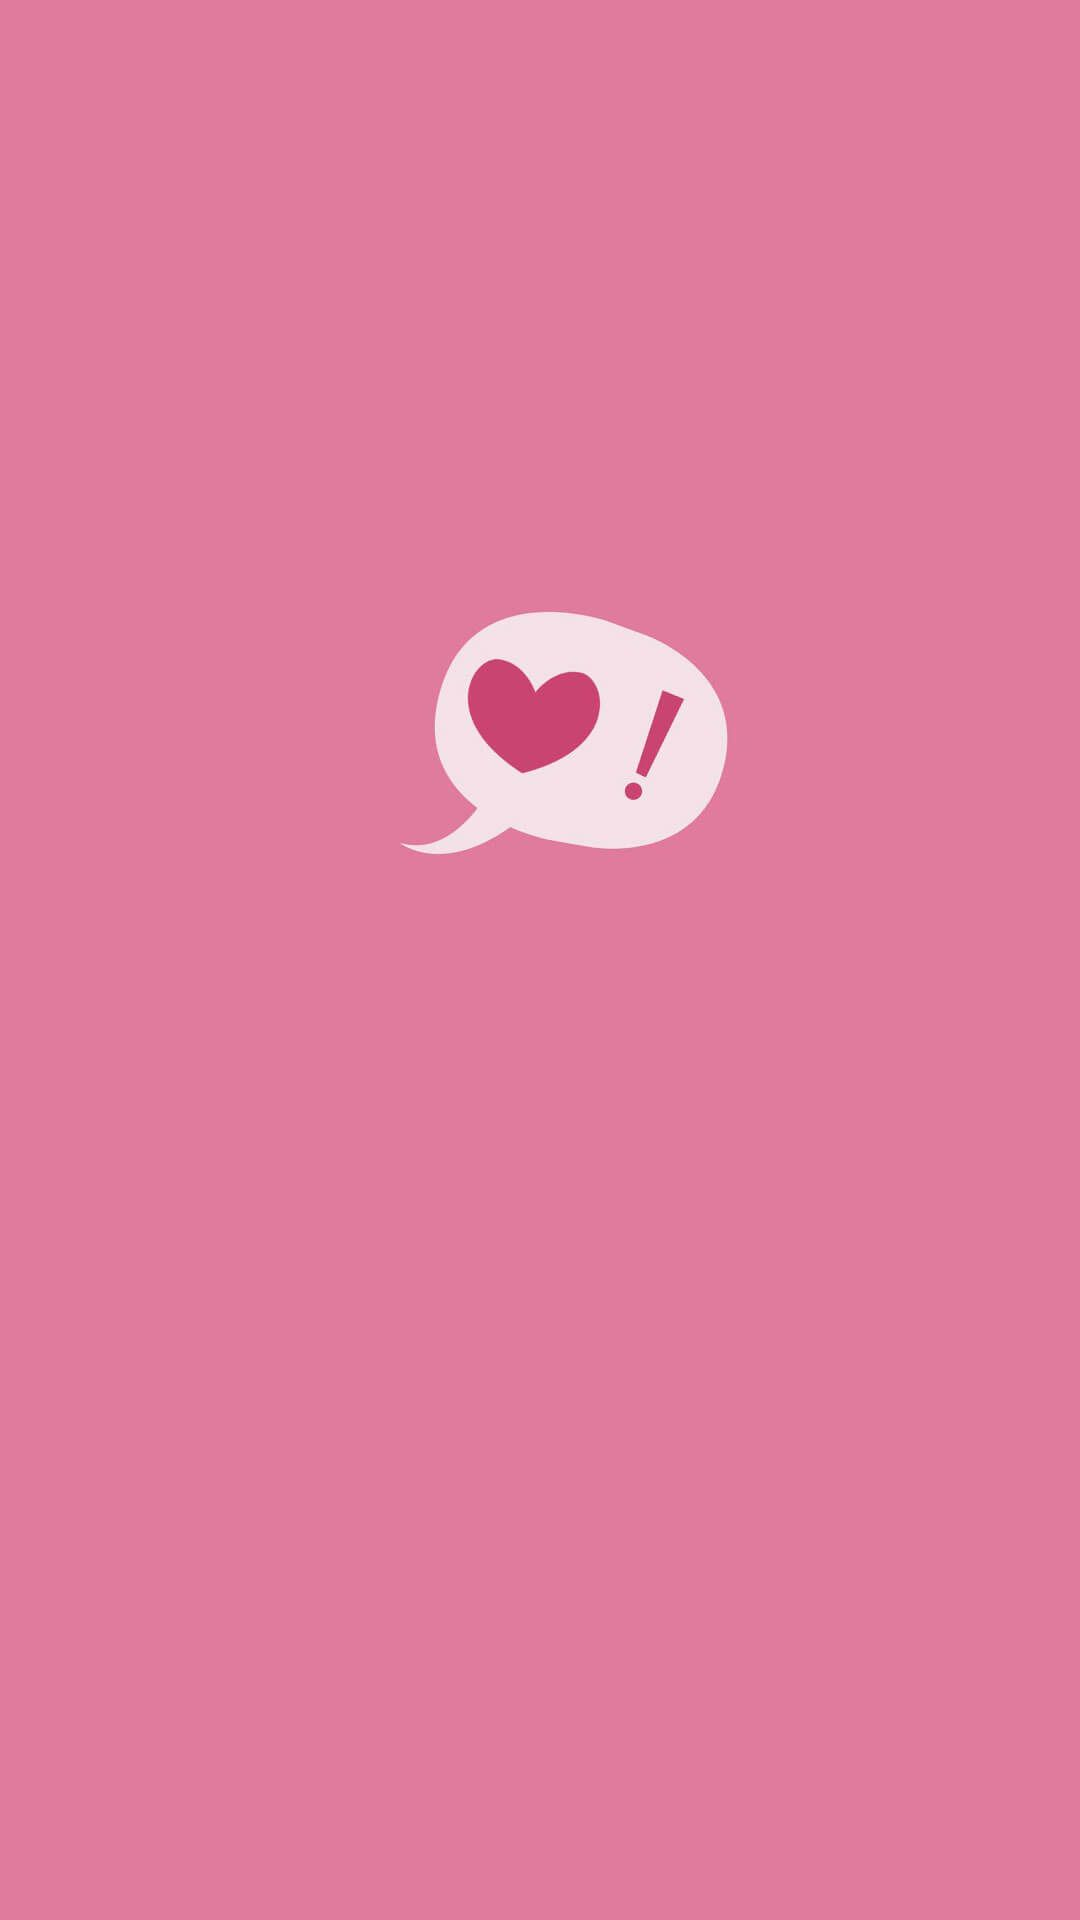 Love Pink Wallpaper Iphone 5 : love pink iphone wallpaper Wallpaper sportstle